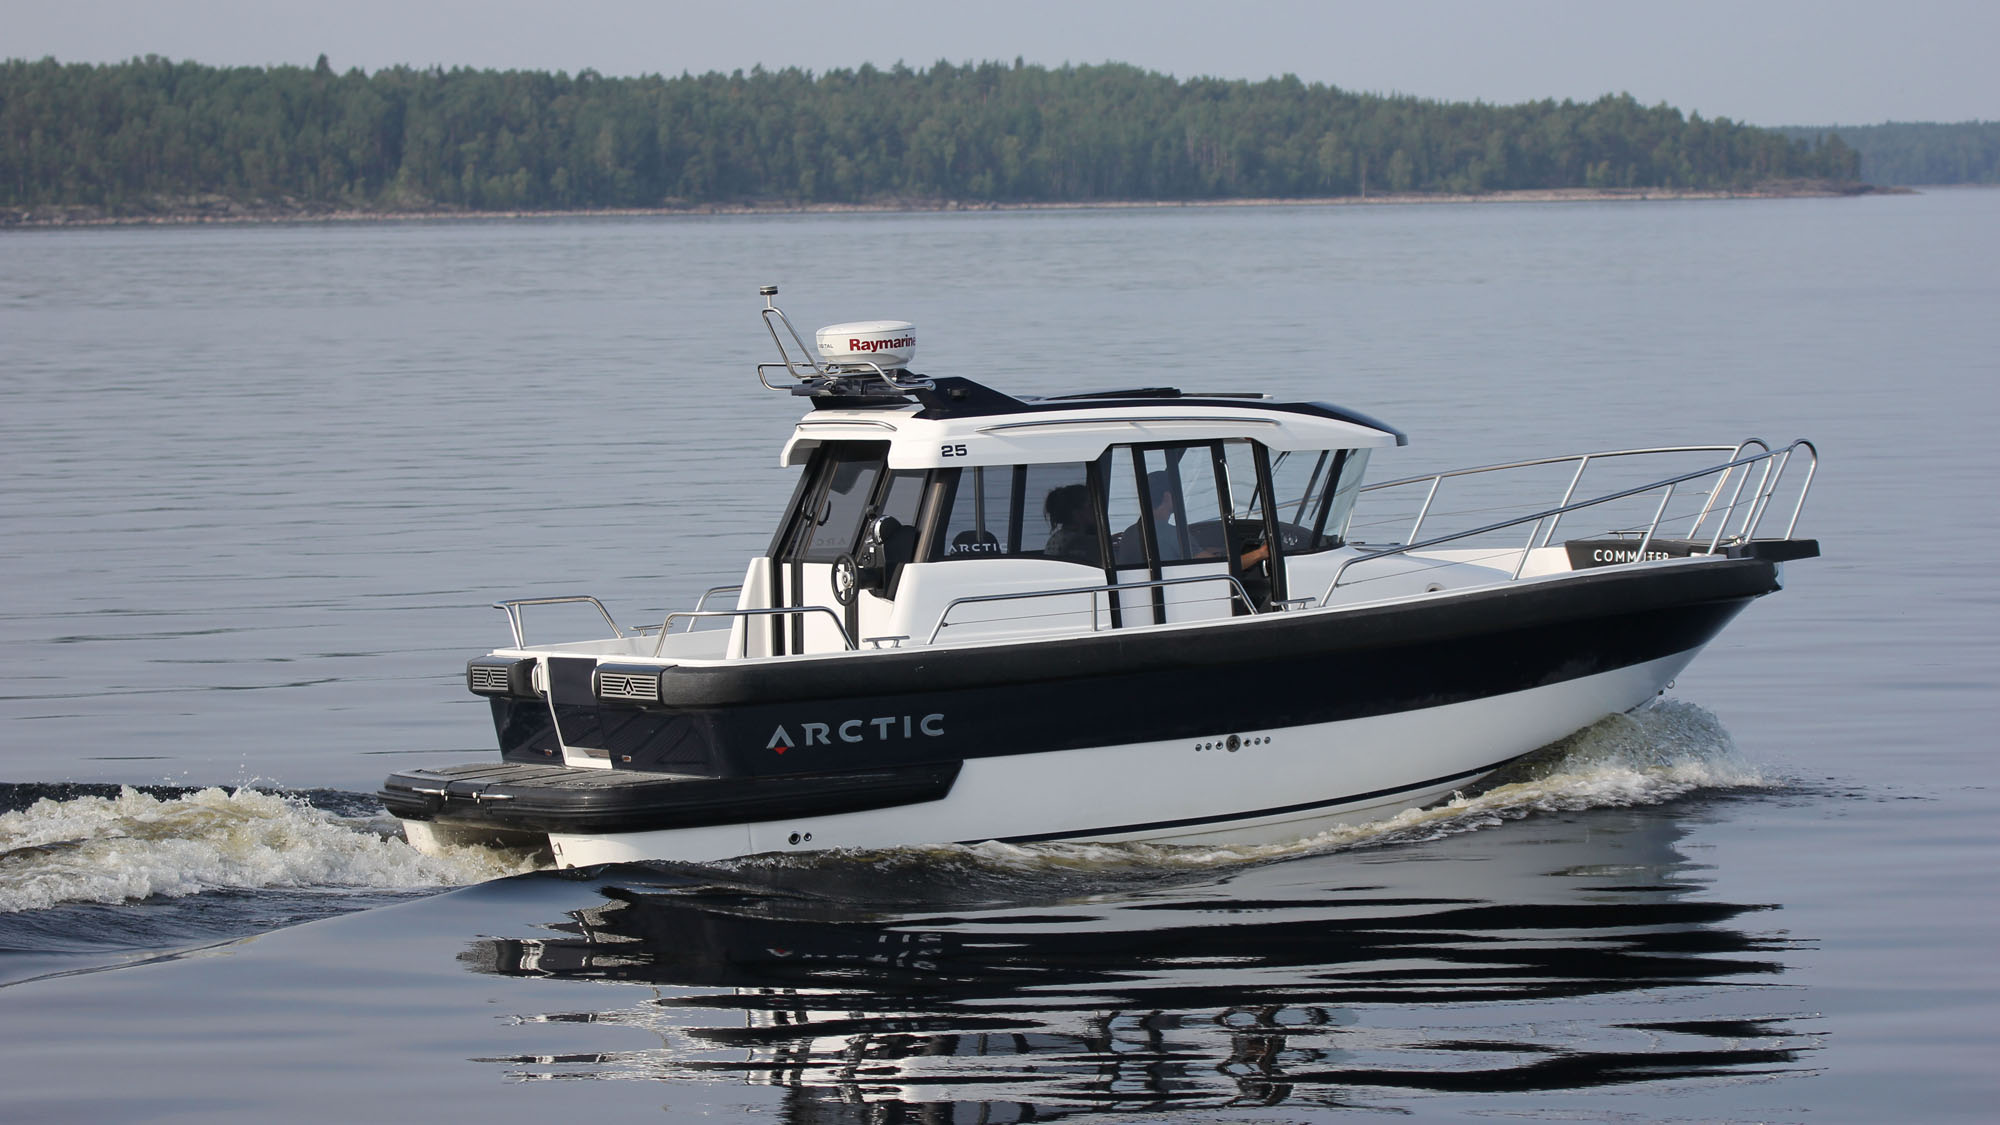 Arctic Commuter 25 Best Of Boats Award